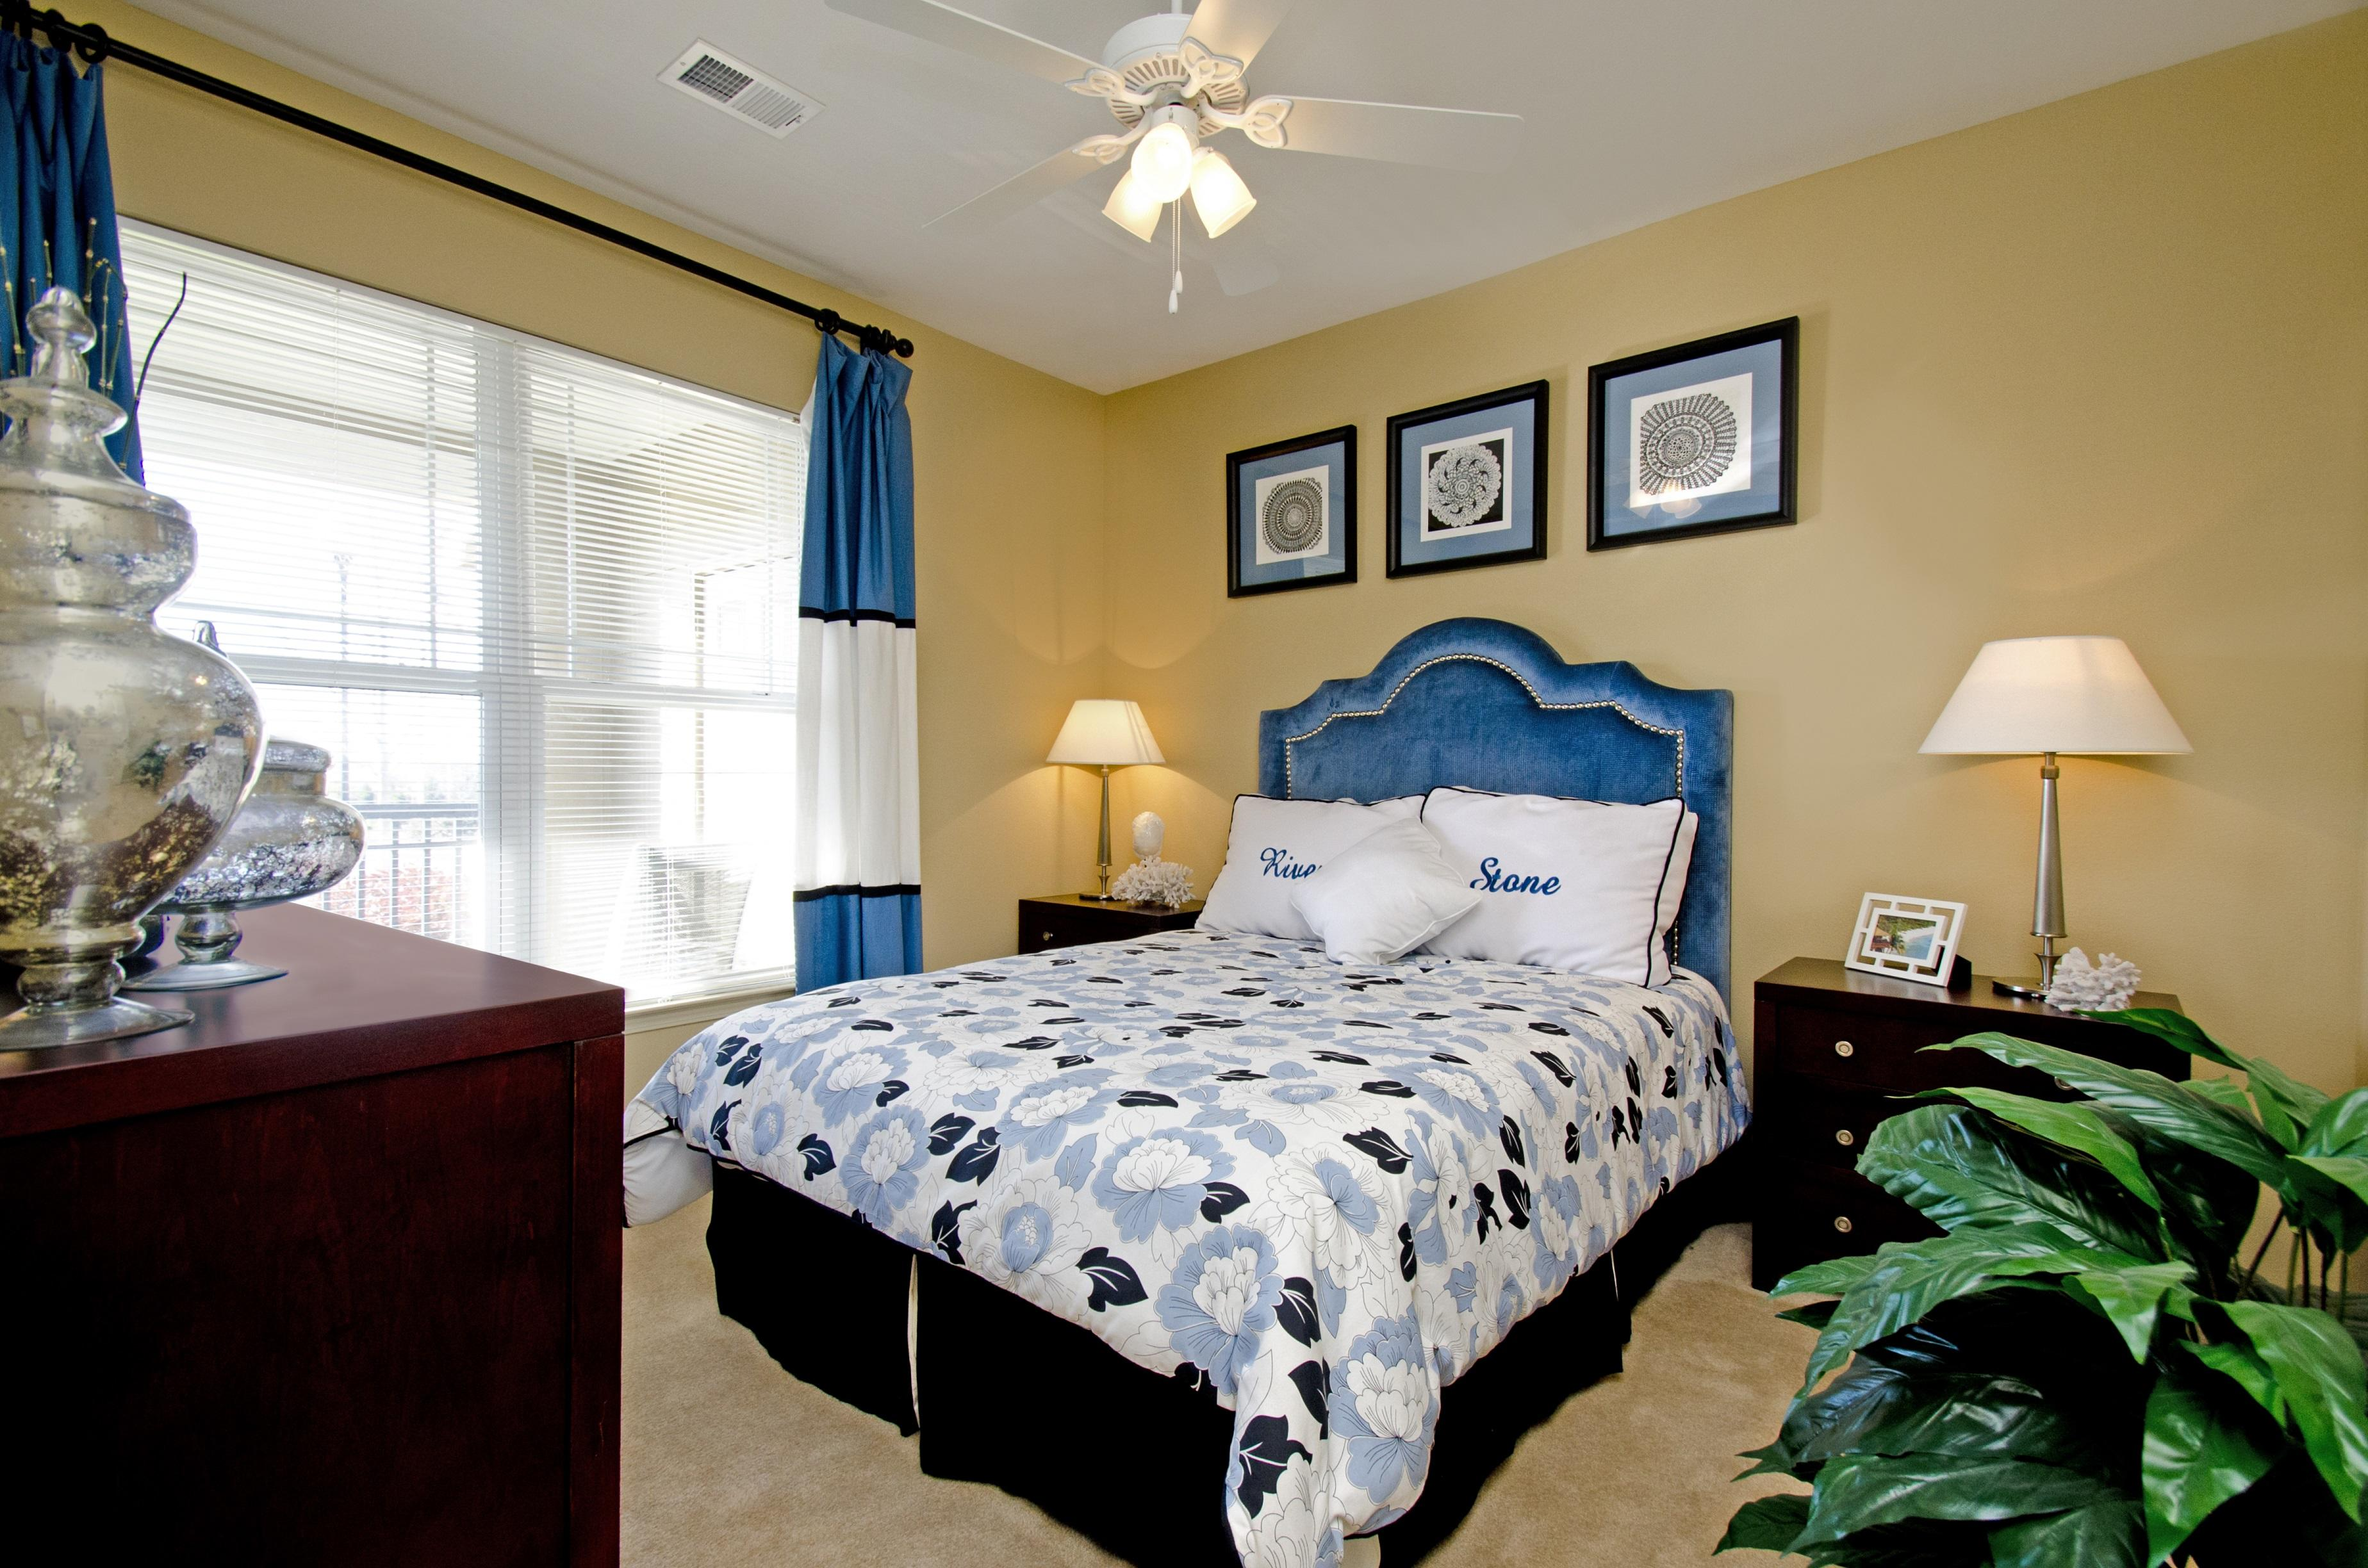 Riverstone Apartments image 3